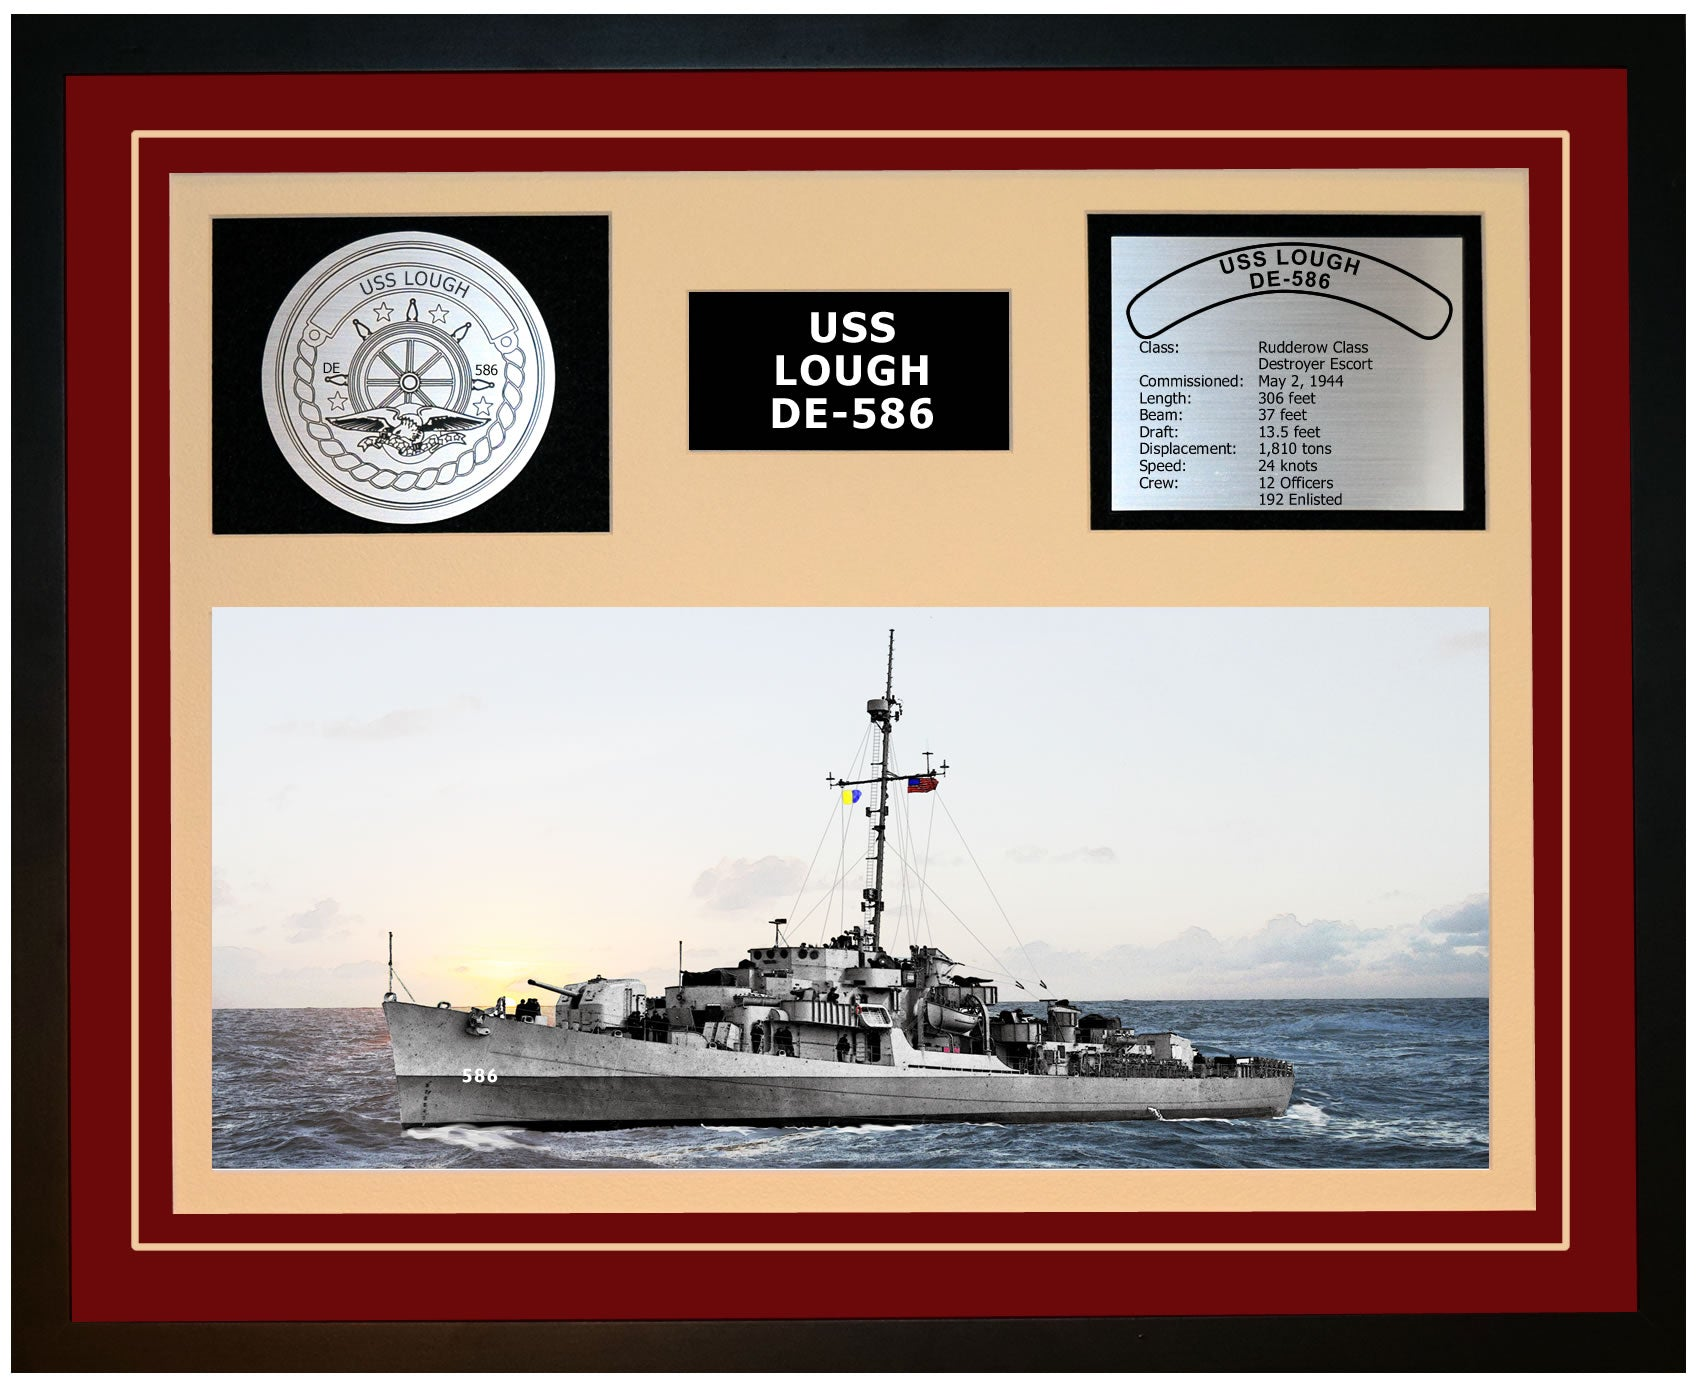 USS LOUGH DE-586 Framed Navy Ship Display Burgundy